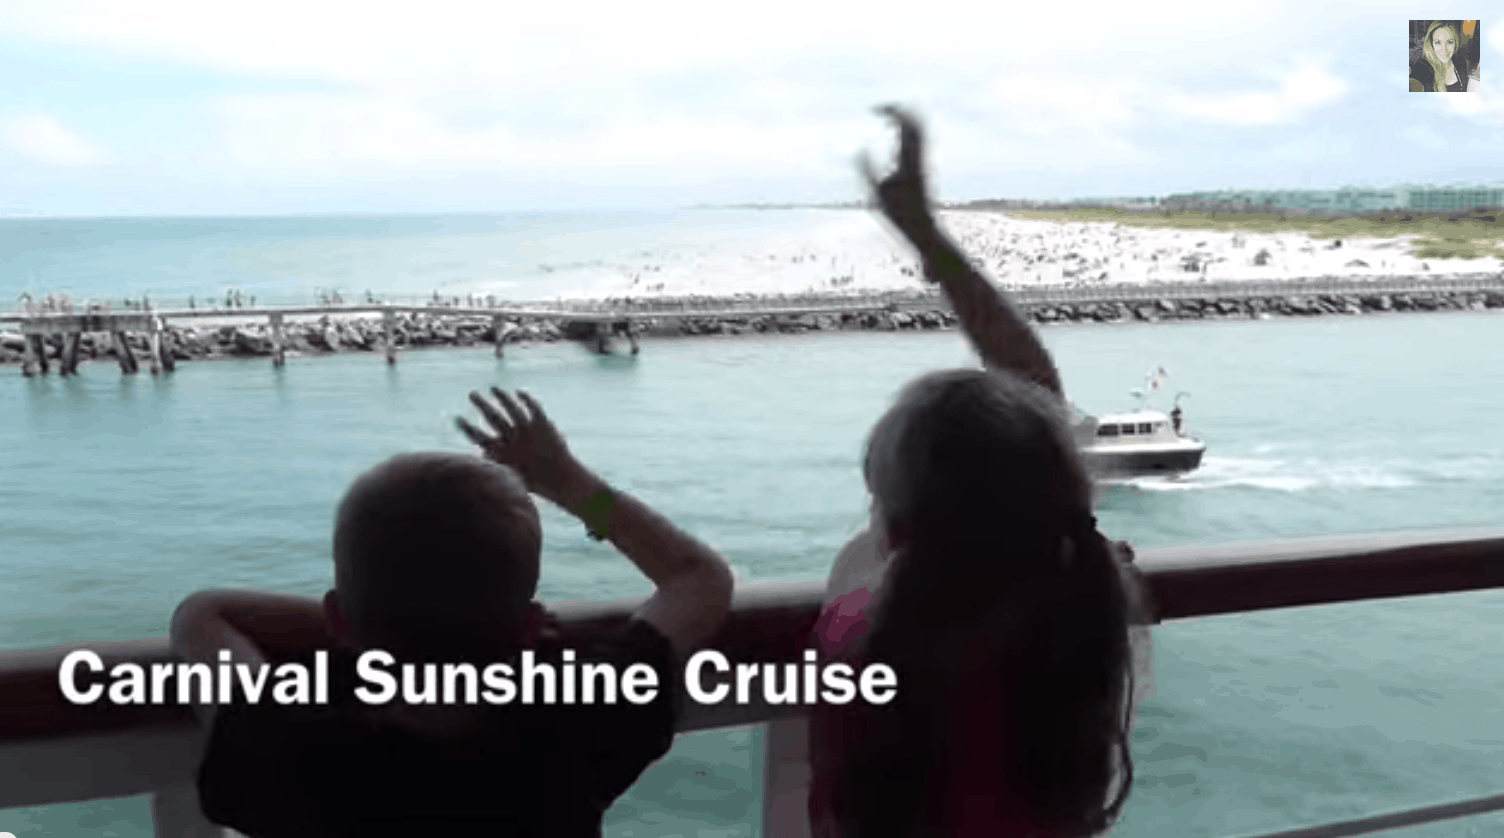 Carnival Sunshine Cruise